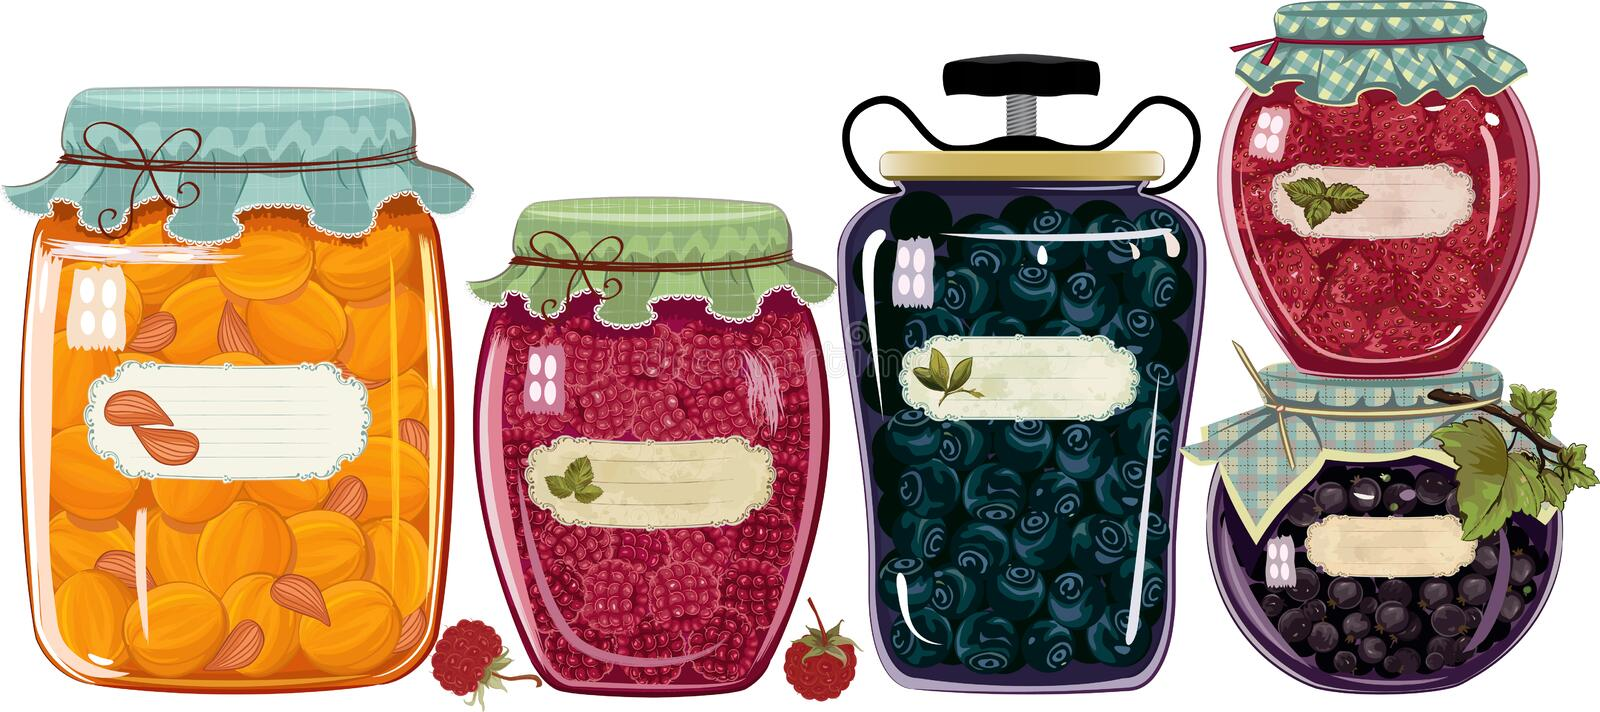 Cans with jam vector illustration